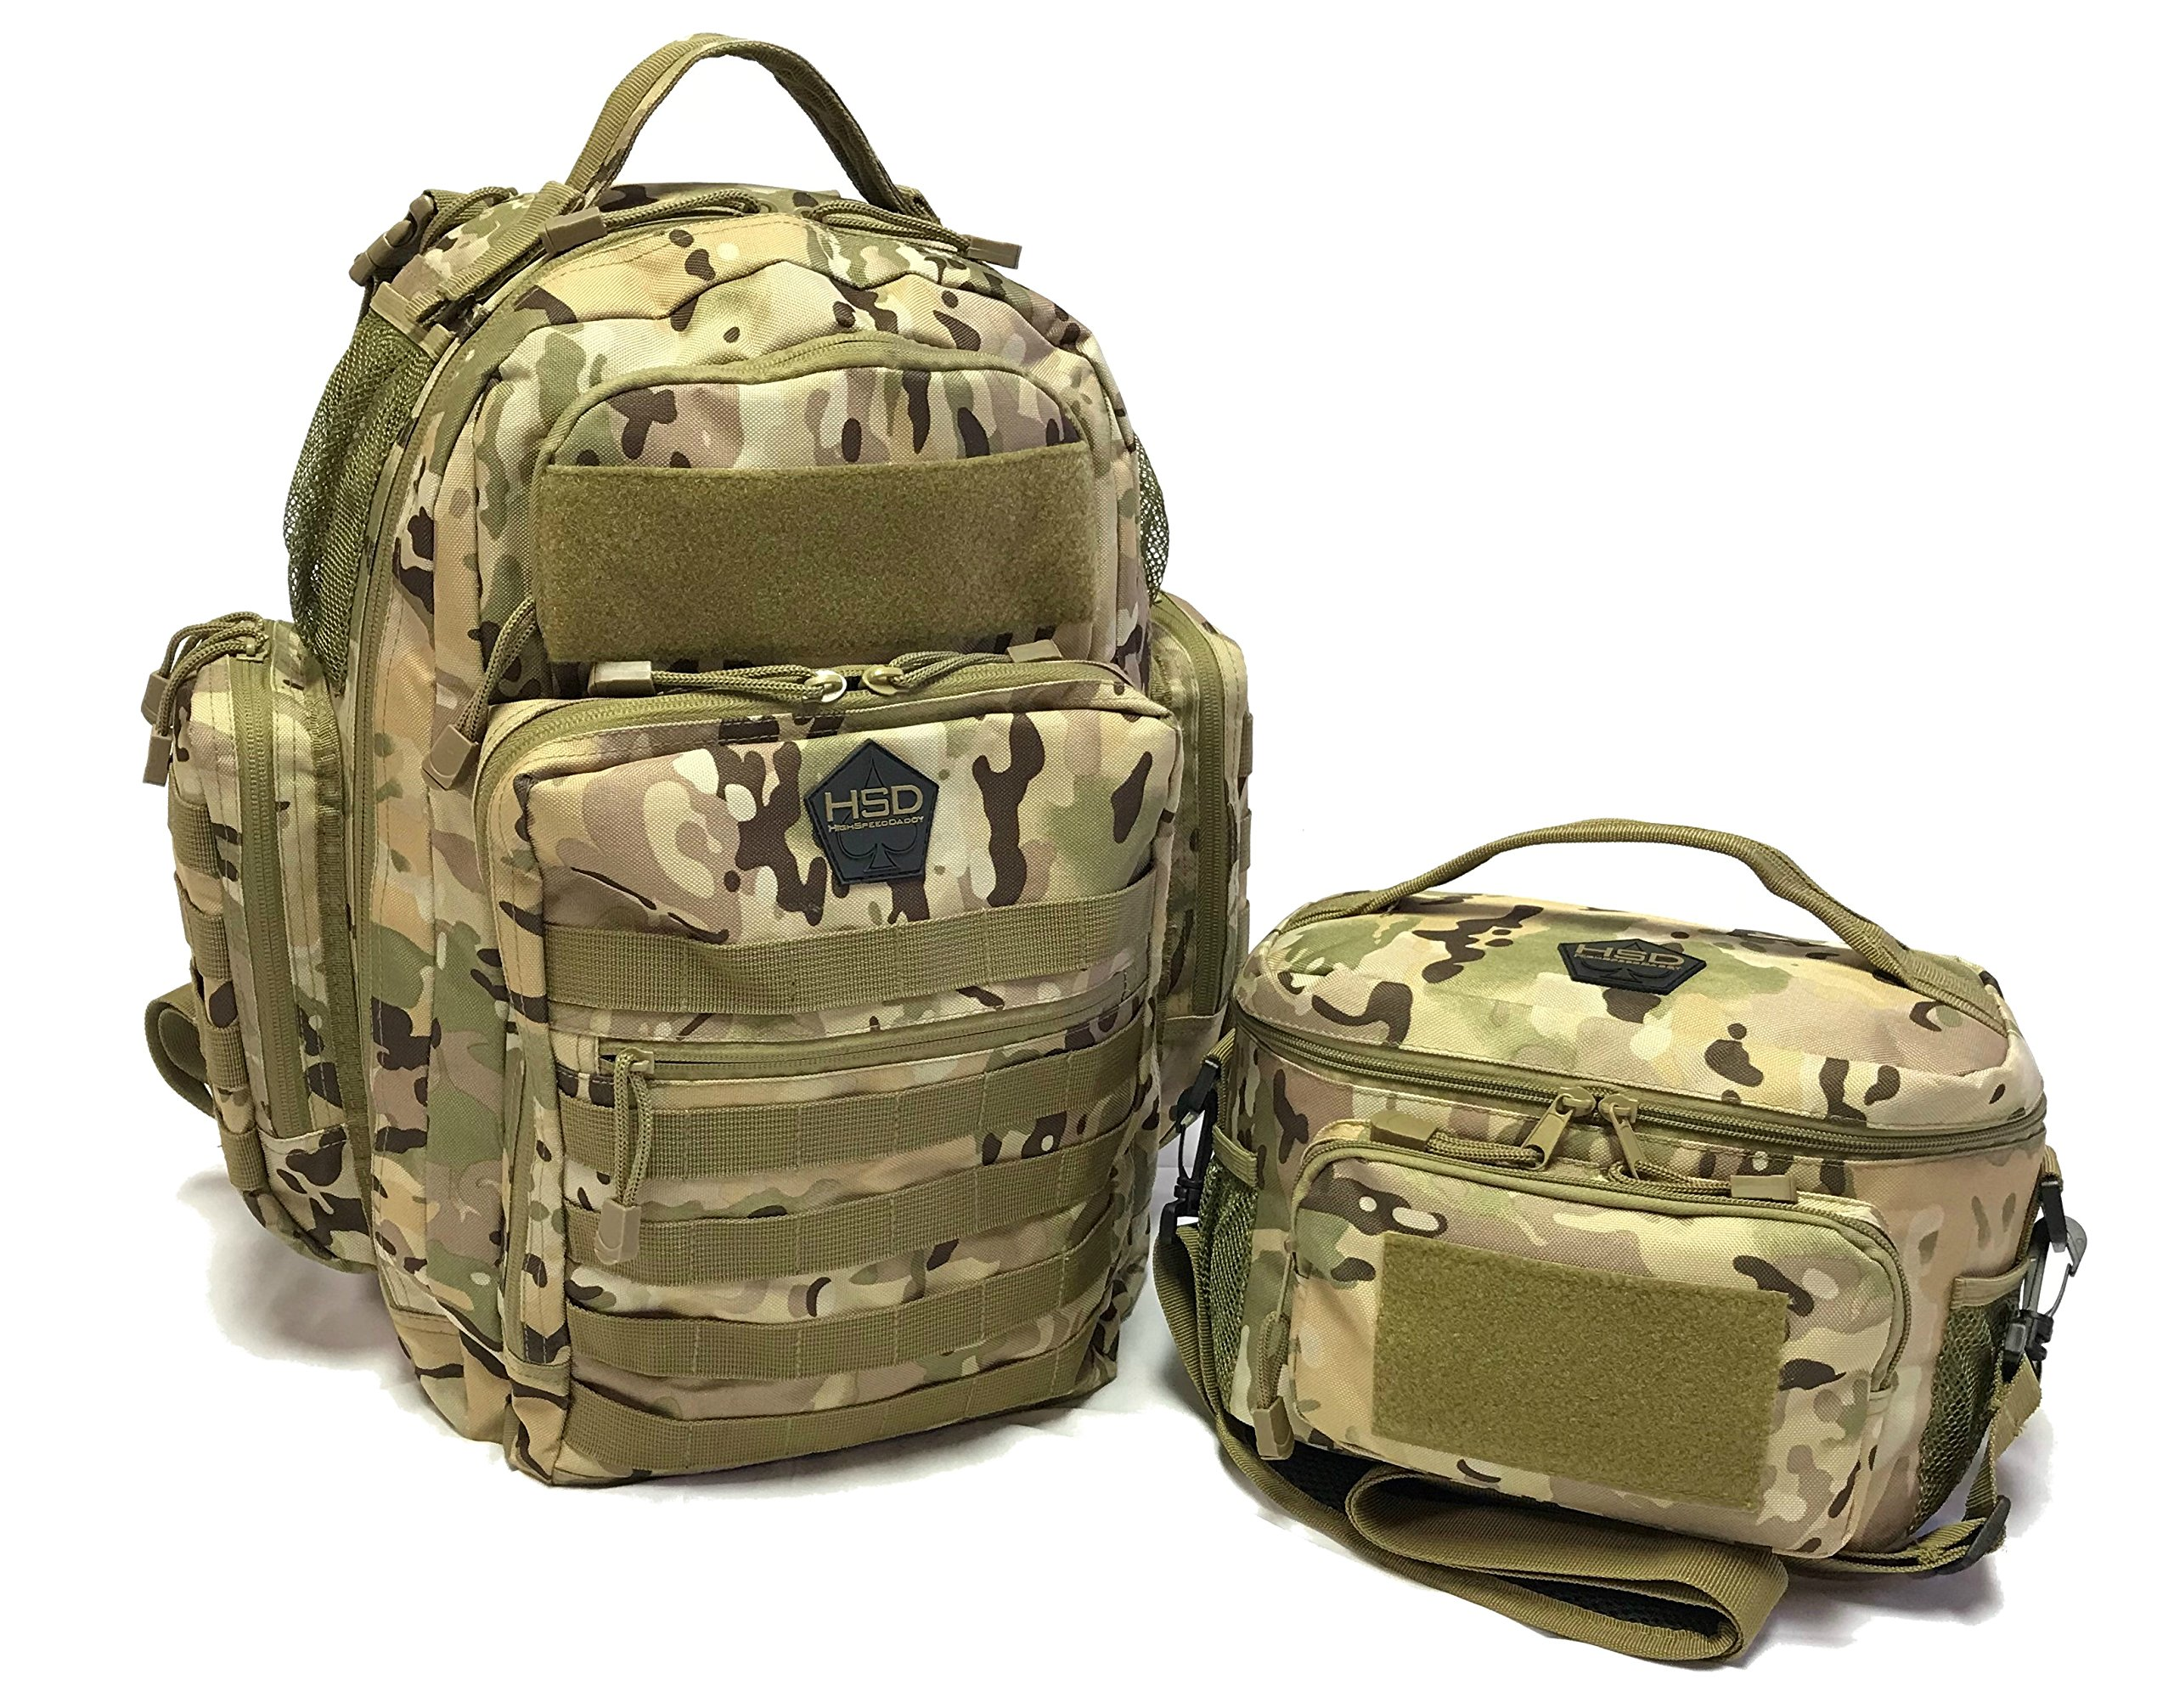 HSD Dynamic Duo Combo Diaper Bag Backpack + Tactical Lunch Bag For the Tactical Dad (Multicam)